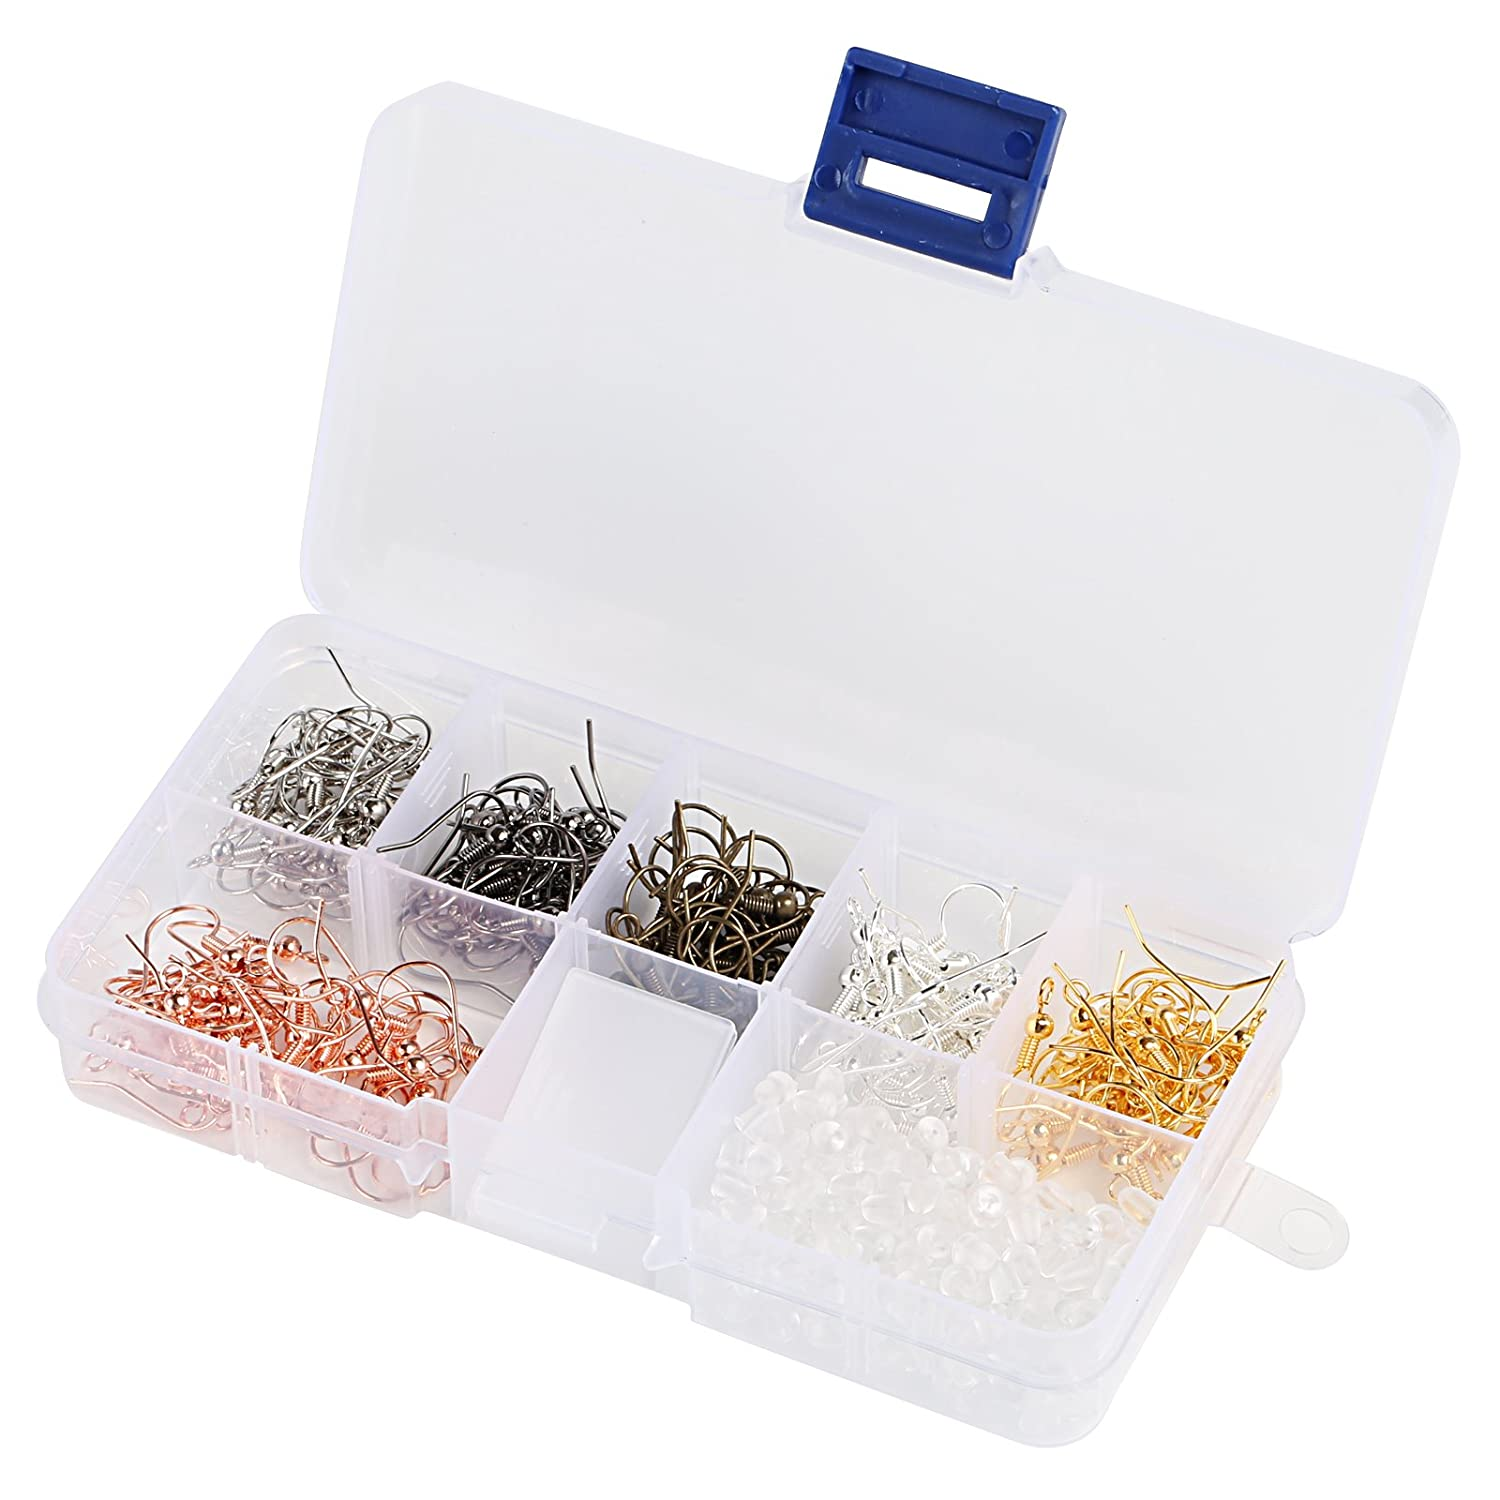 Naler 180pcs Earring Hooks Ear Wires Fish Hooks + 200pcs Rubber Earring Backs with Assorted Box for DIY Jewellery Finding Craft Jewellery Making (6 Colours) 4336826843